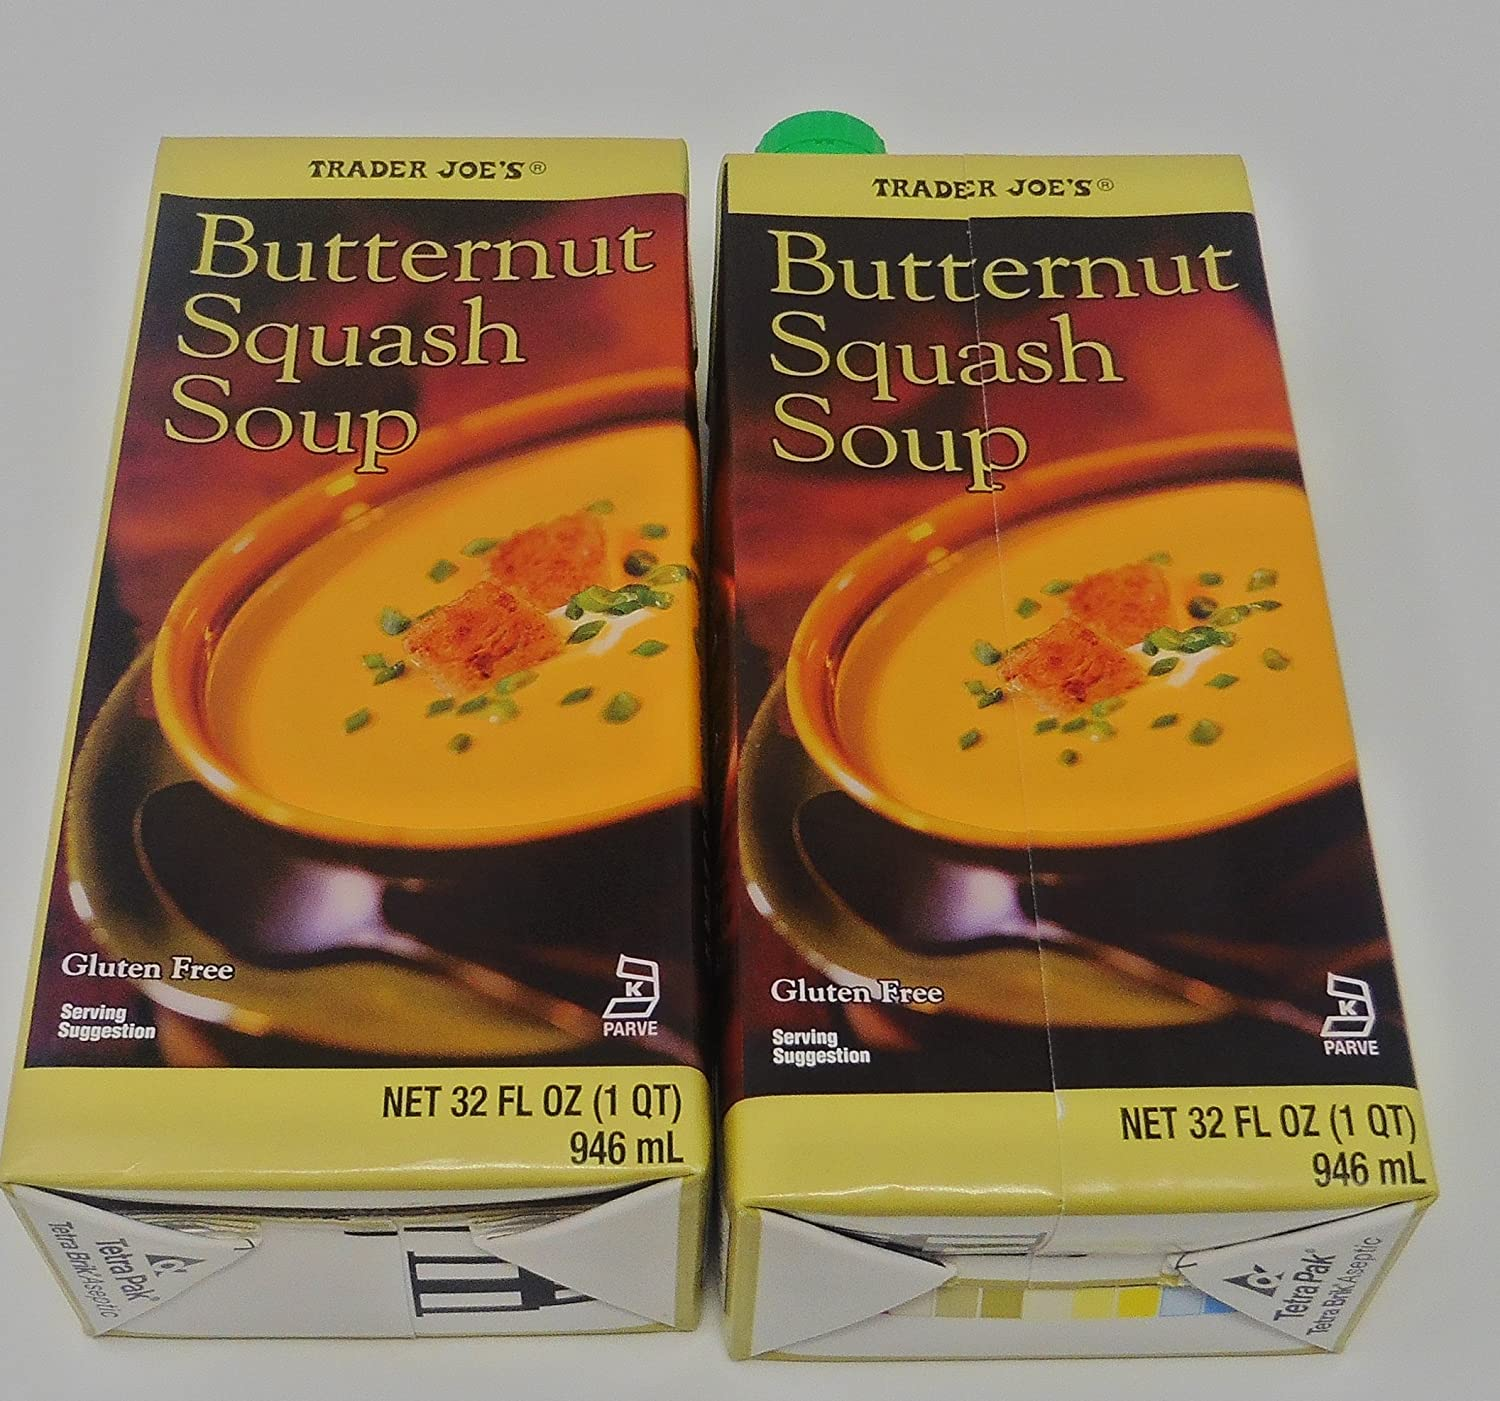 Butternut Squash Soup Gluten Free 2 Packs Each 32 Oz Trader Joes